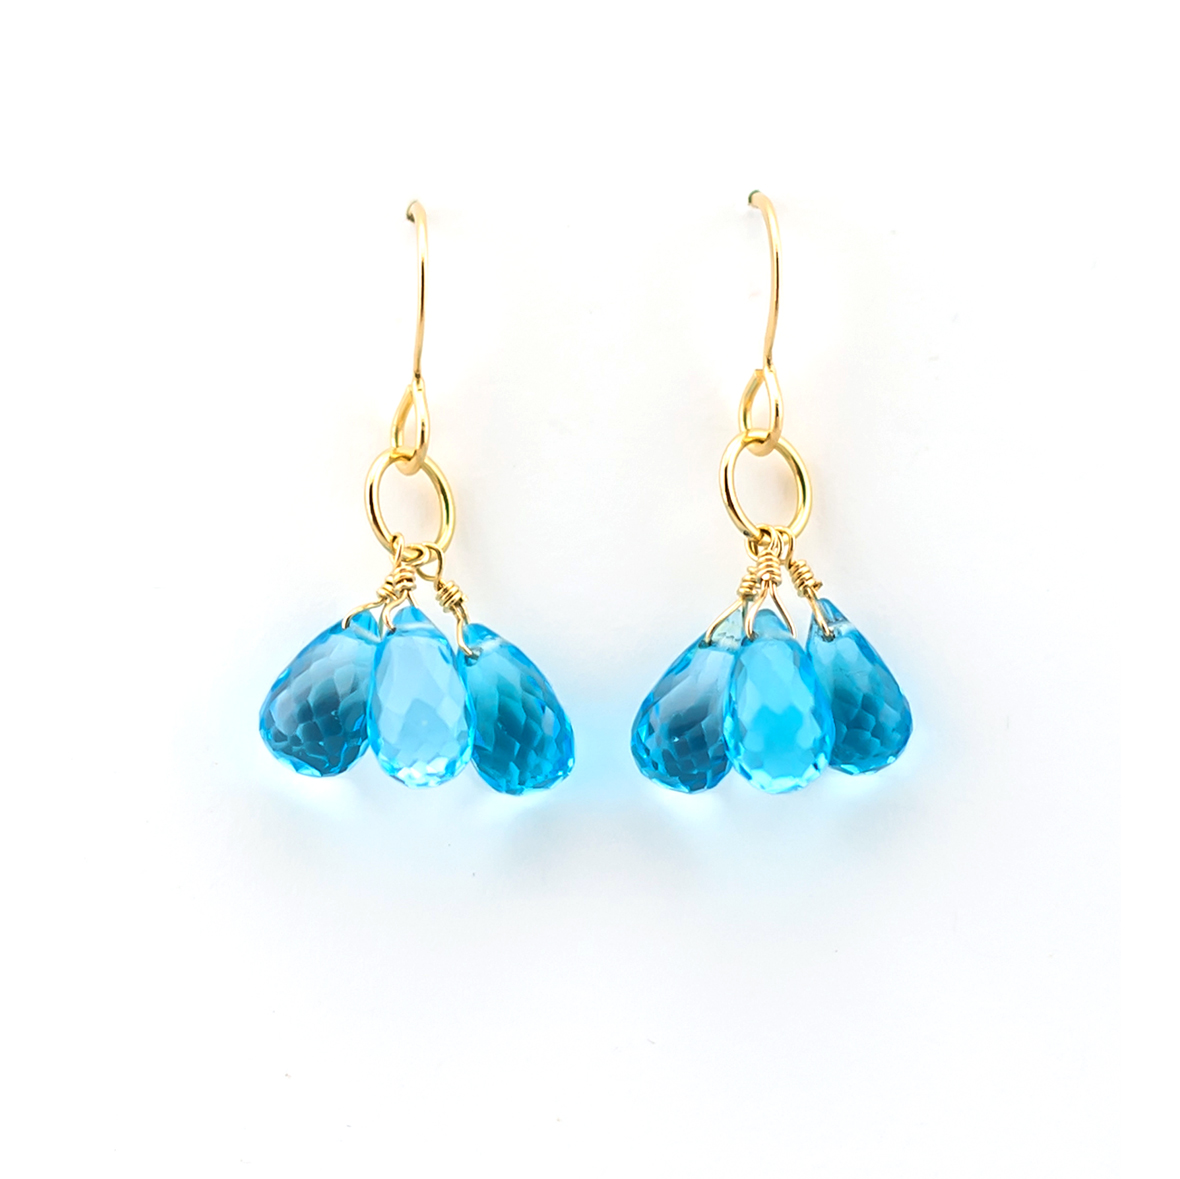 Earrings3.jpg